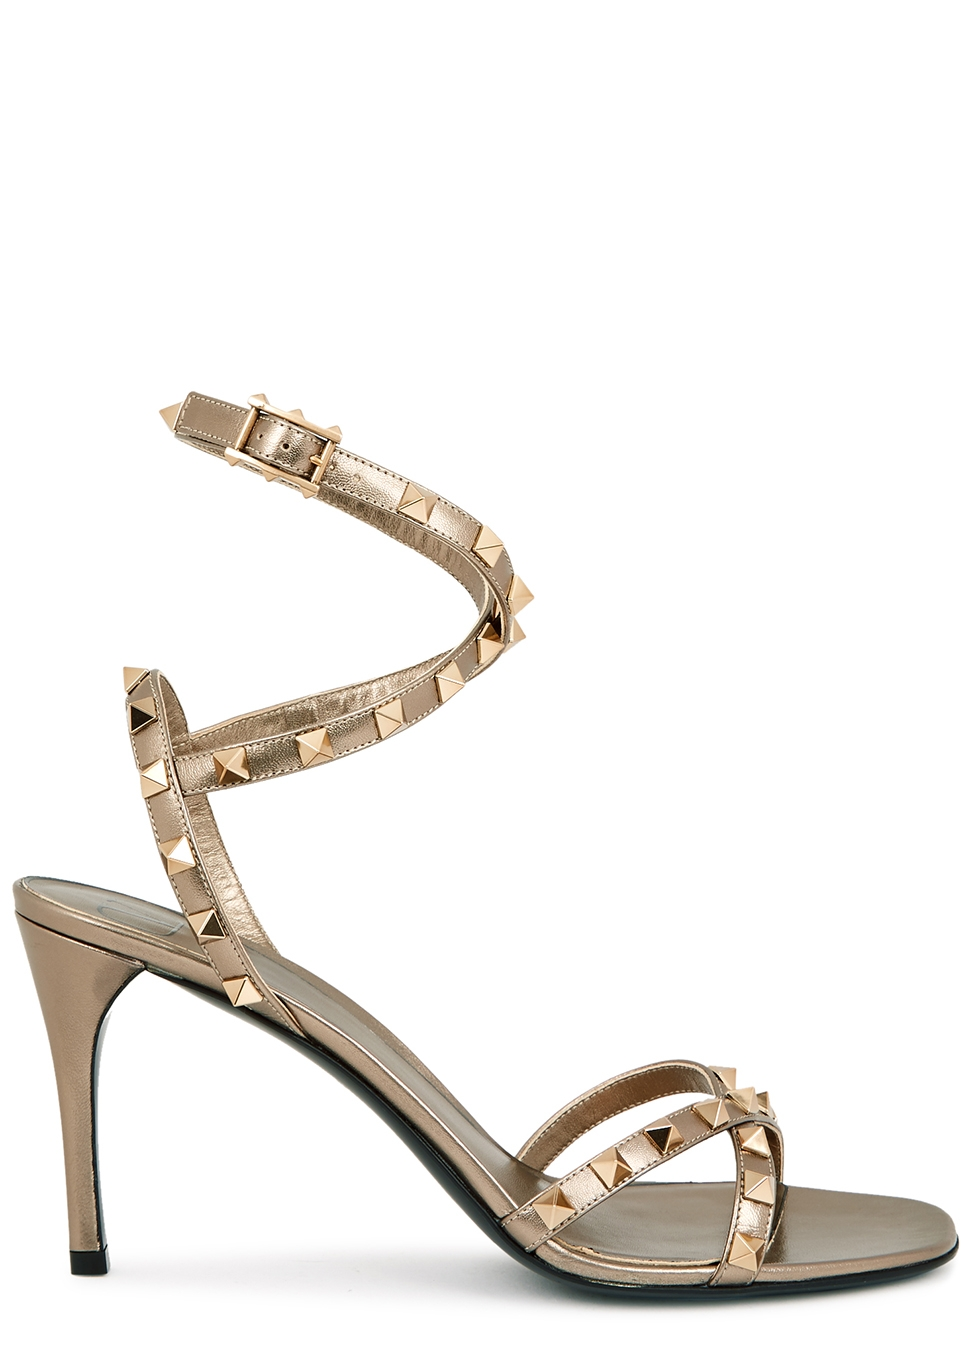 Valentino Garavani Rockstud Flair 90 bronze leather sandals